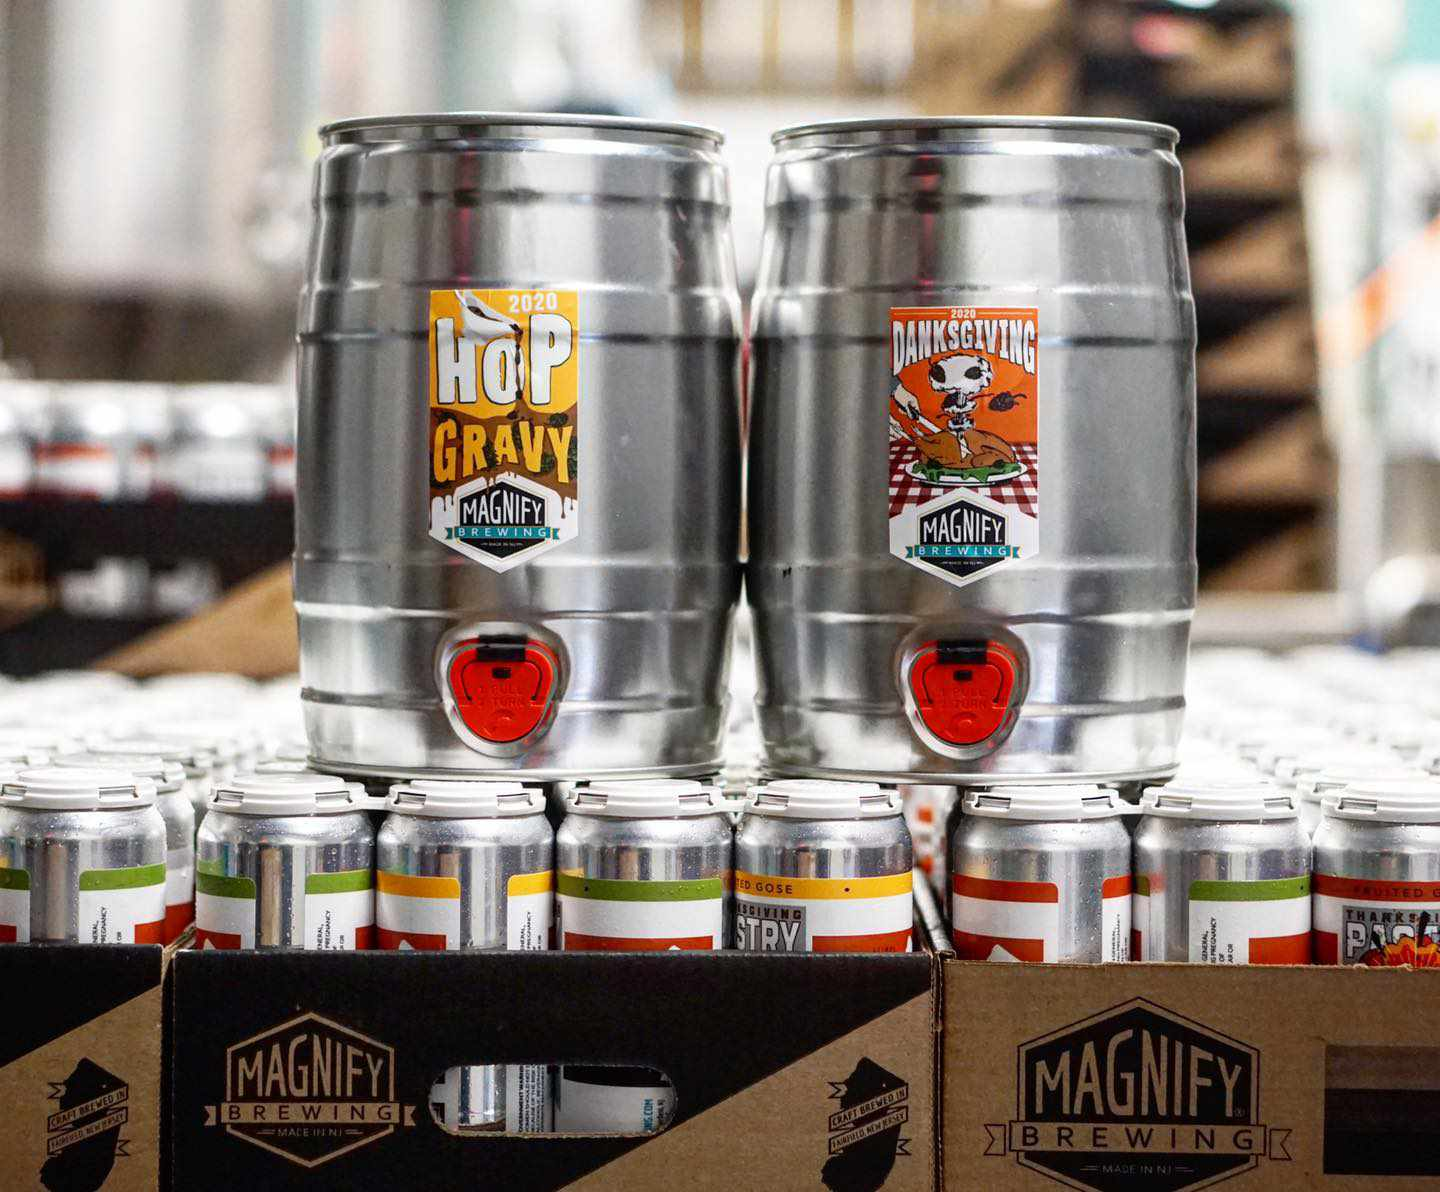 Kegs from Magnify Brewing